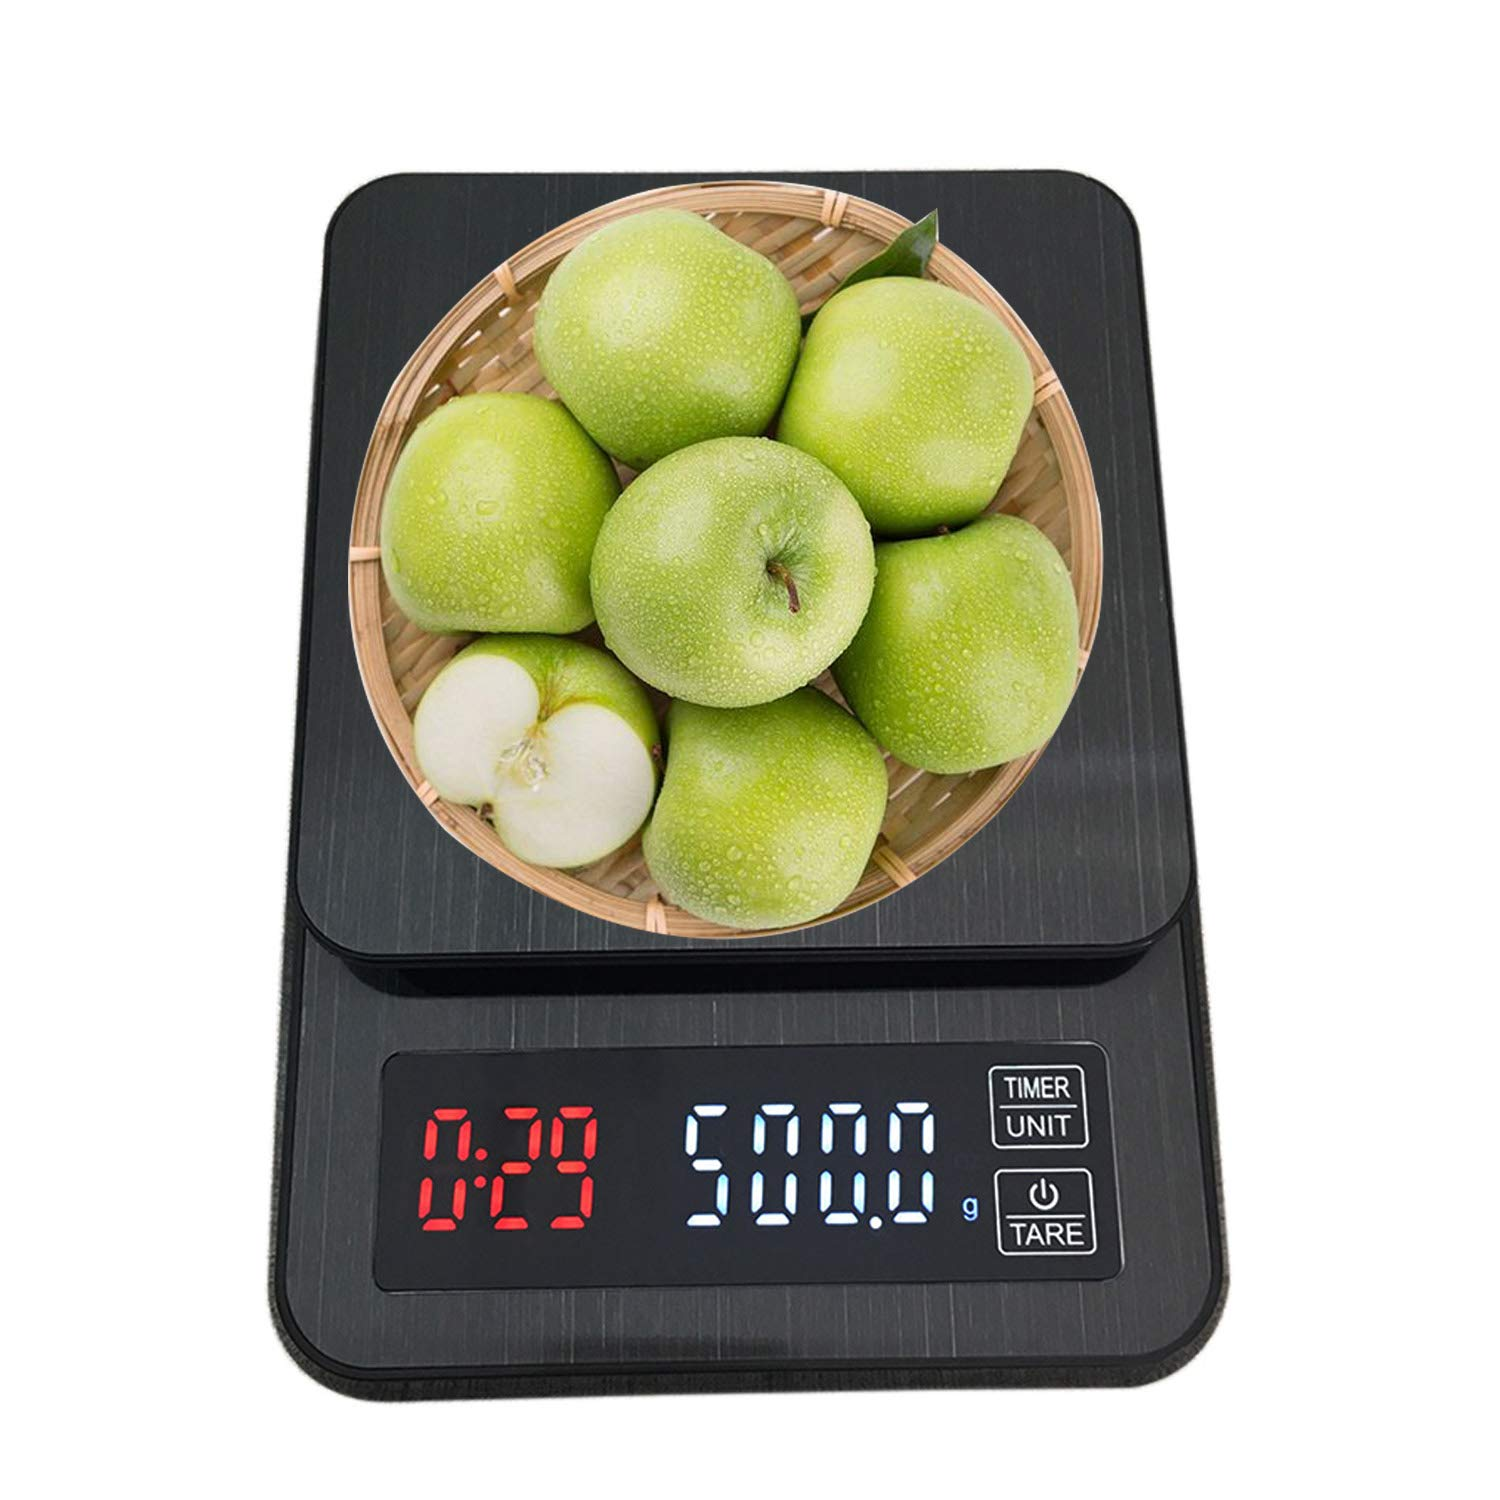 Small Food Scale Grams Ounces Pounds with Timer,Digital Kitchen Scale USB Charging/ AAA Batteries Operated, 0.5gram/ 5KG, Mini Espresso Coffee Scale